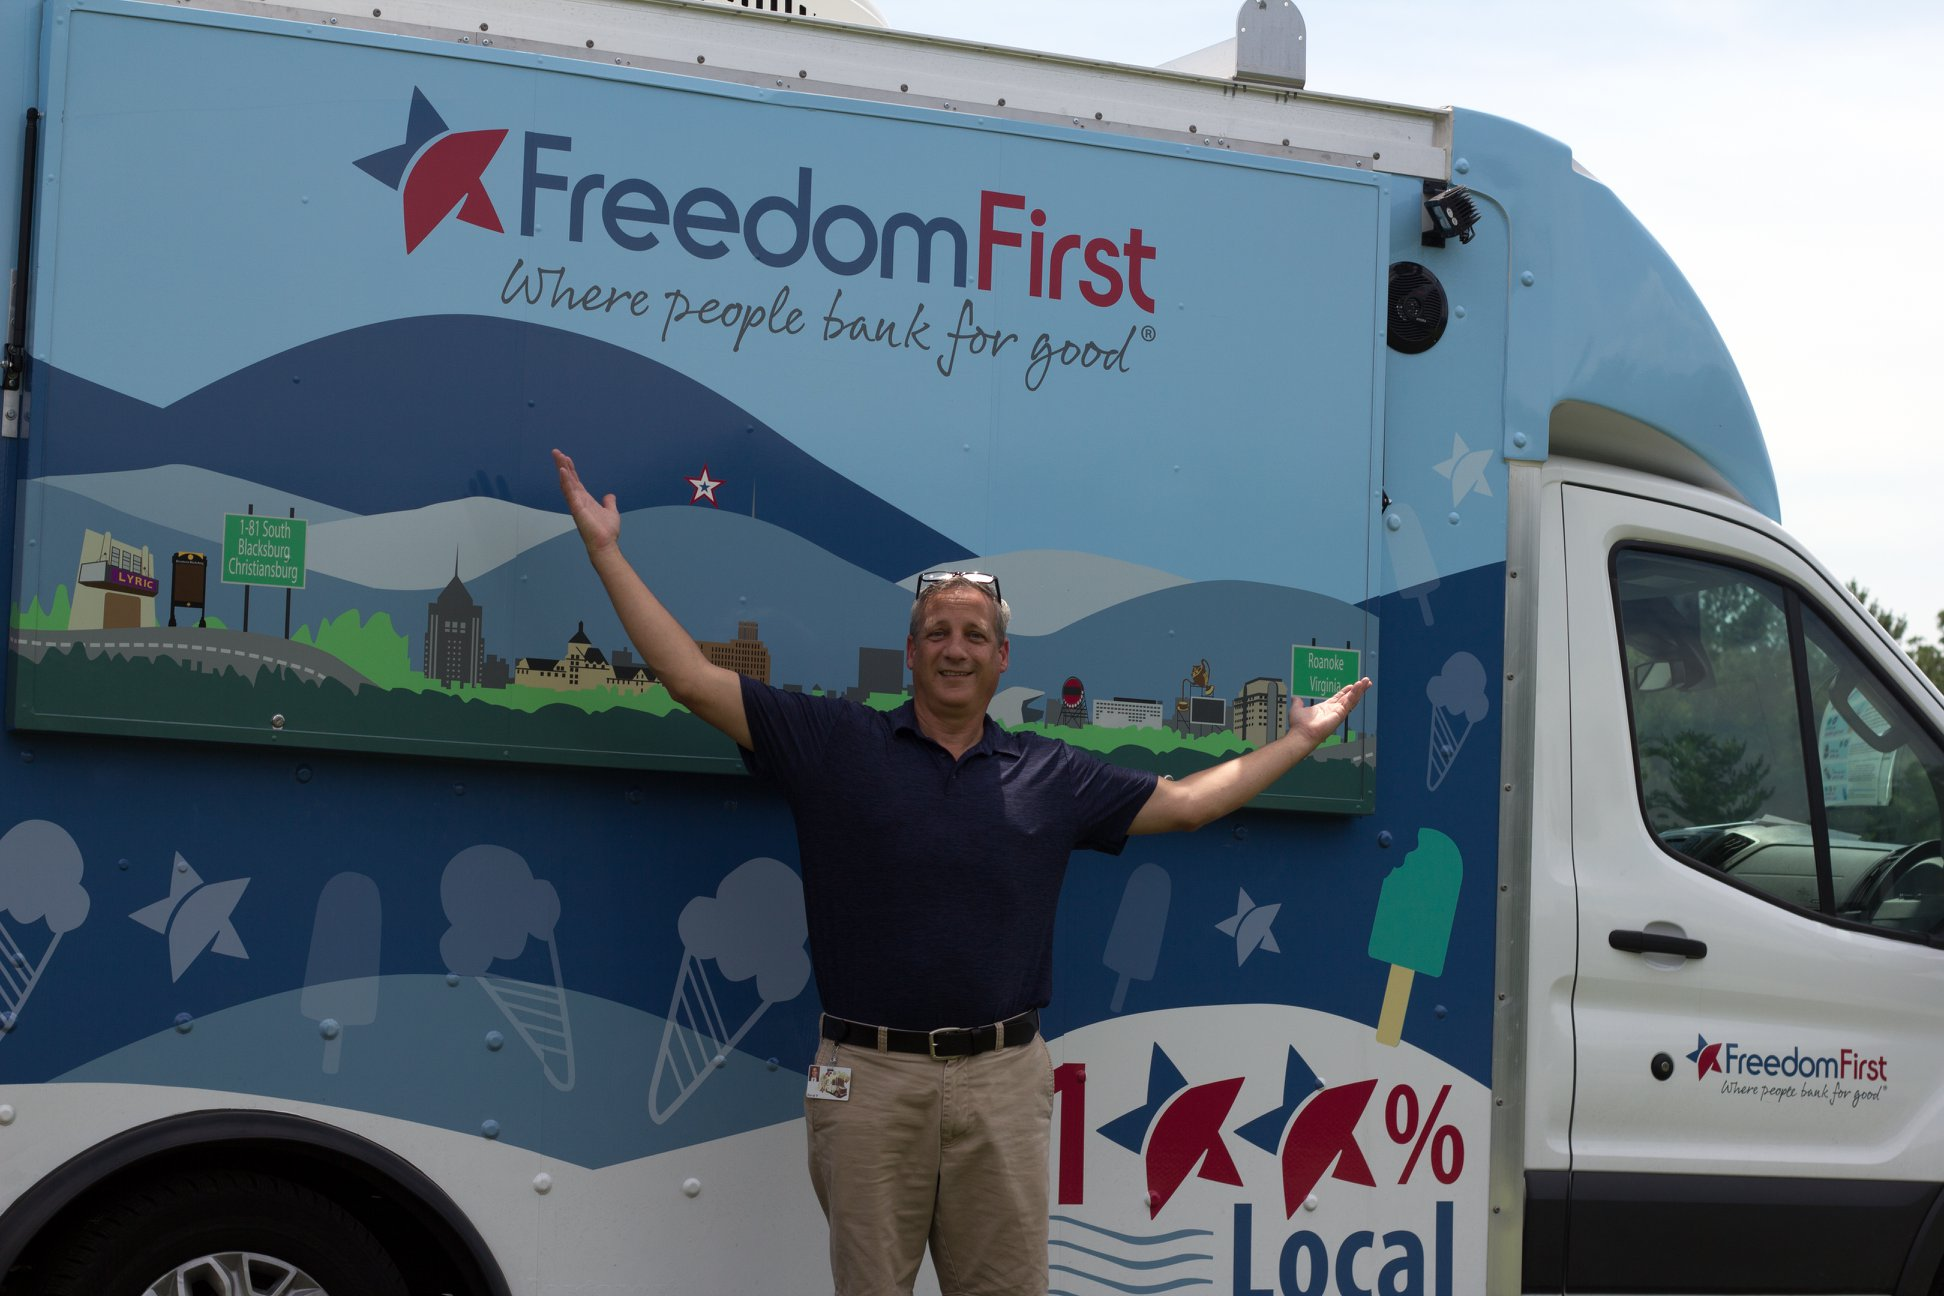 Dave Prosser standing in front of the Freedom First Scoop ice cream truck